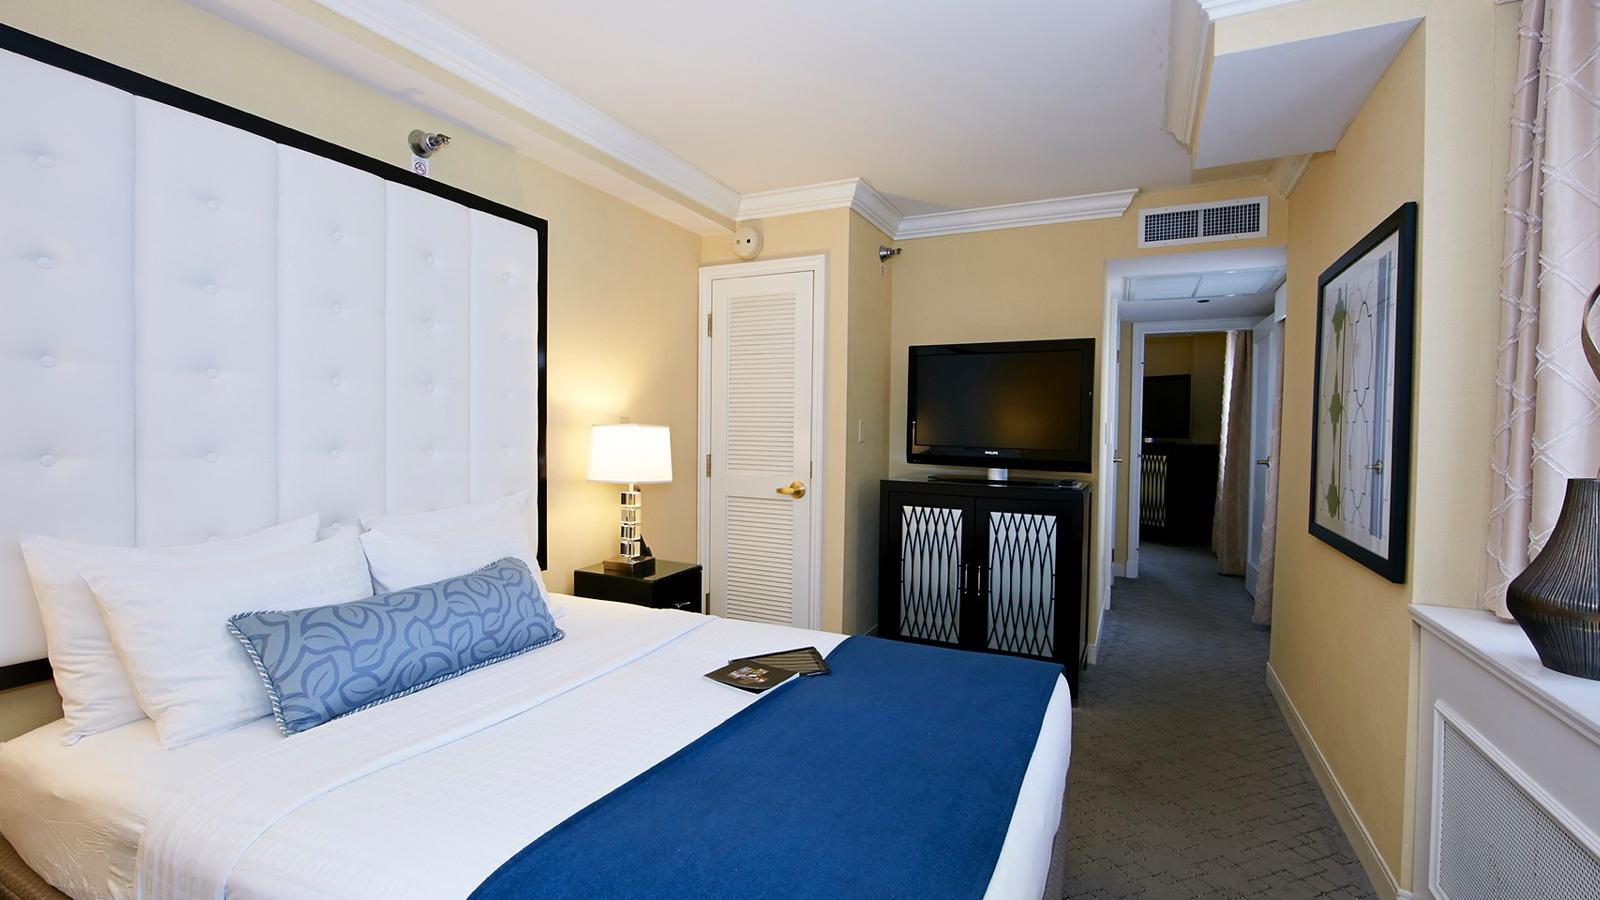 Superior Suites offer details